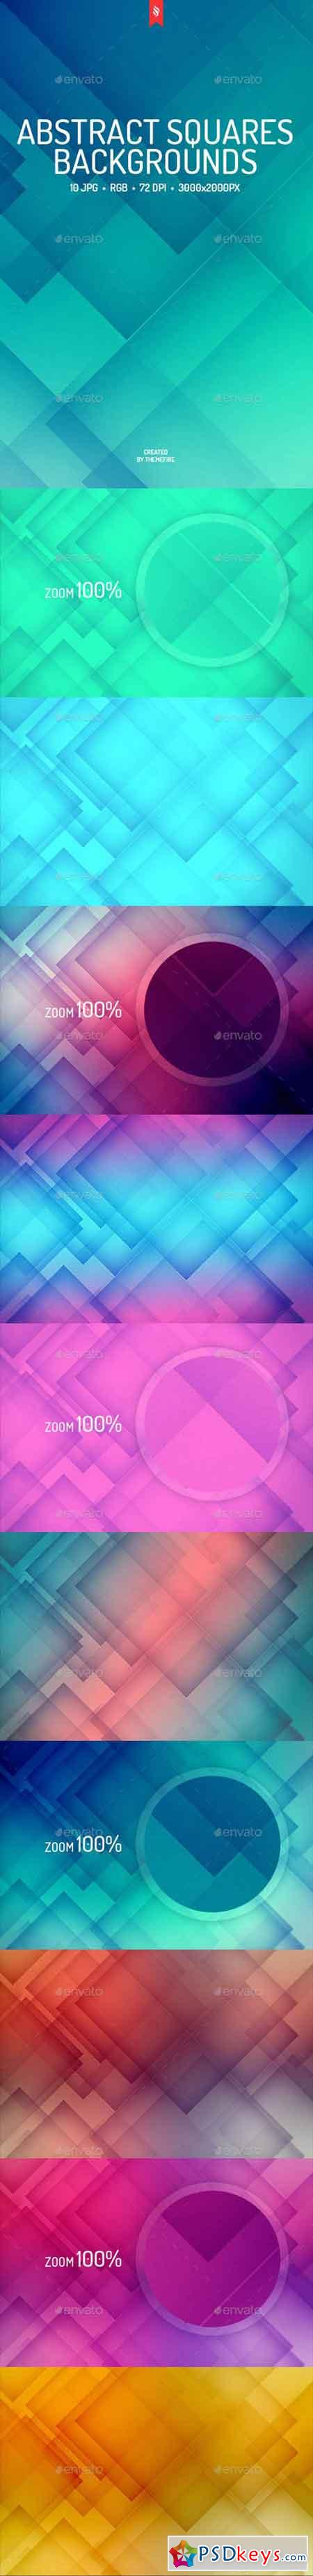 Abstract Squares Backgrounds 18647105